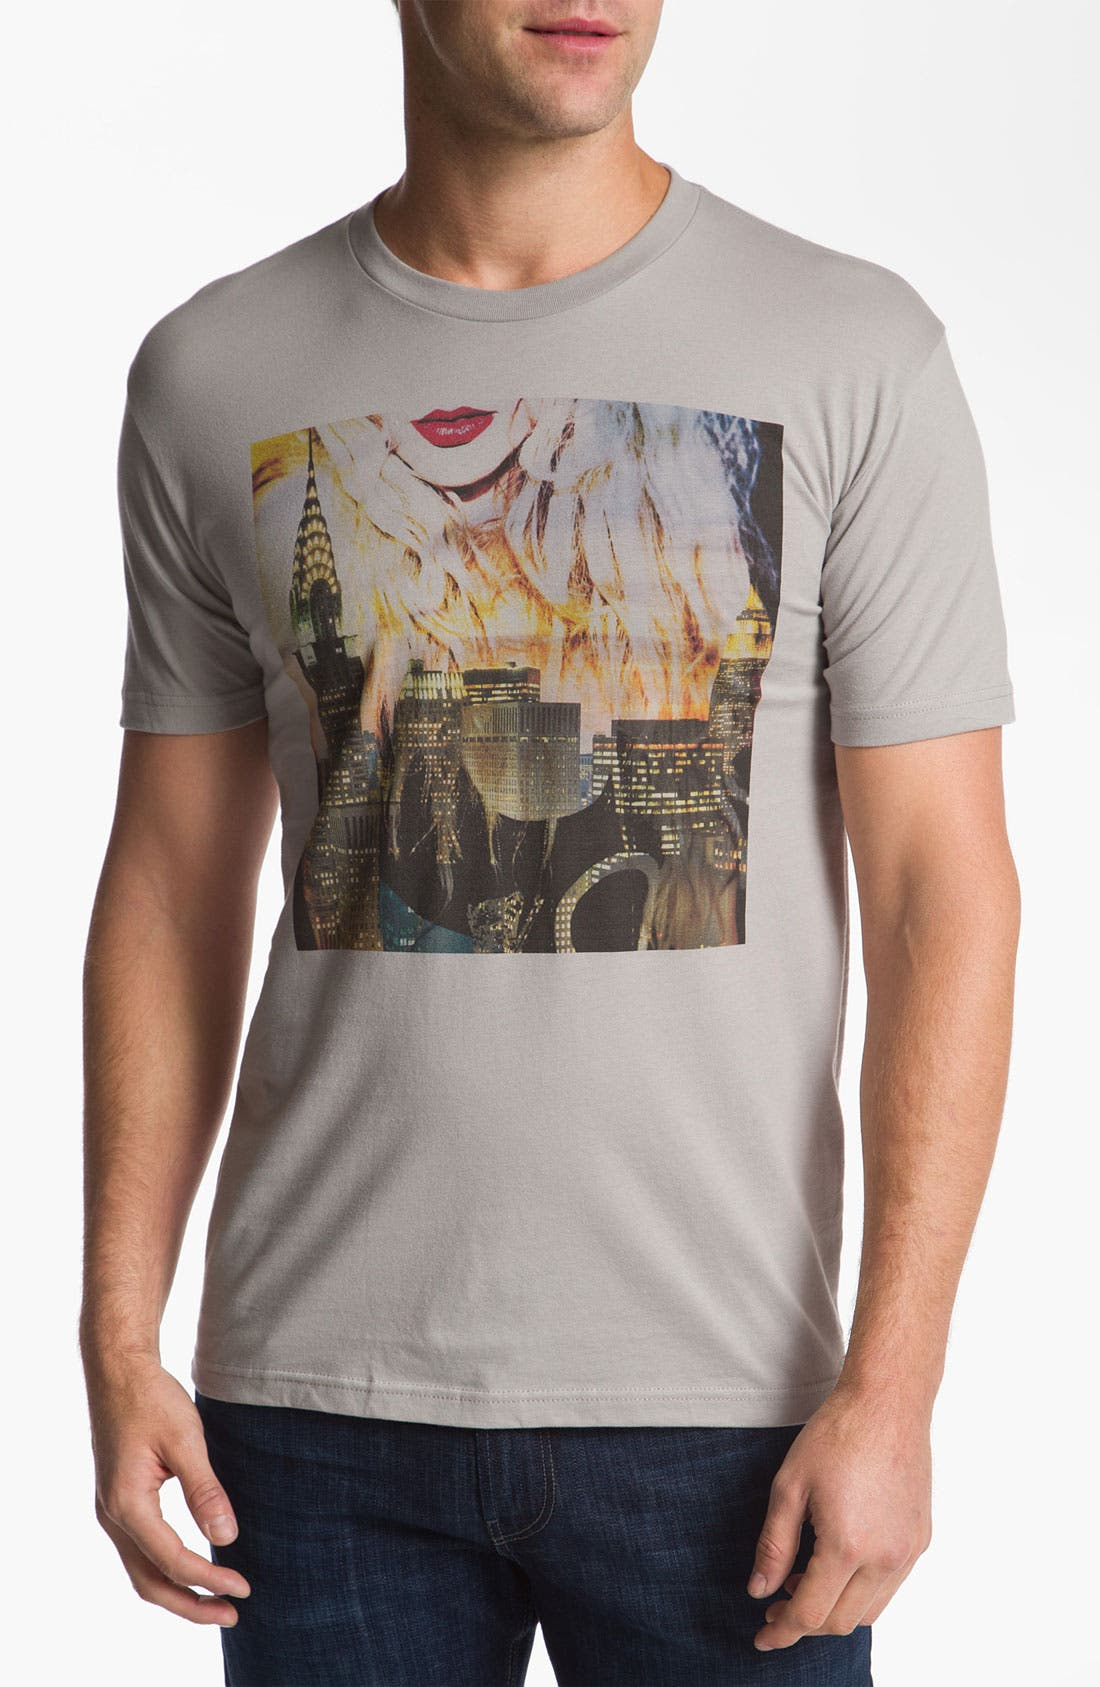 Alternate Image 1 Selected - Kid Dangerous Grime Couture 'City Life' Graphic T-Shirt